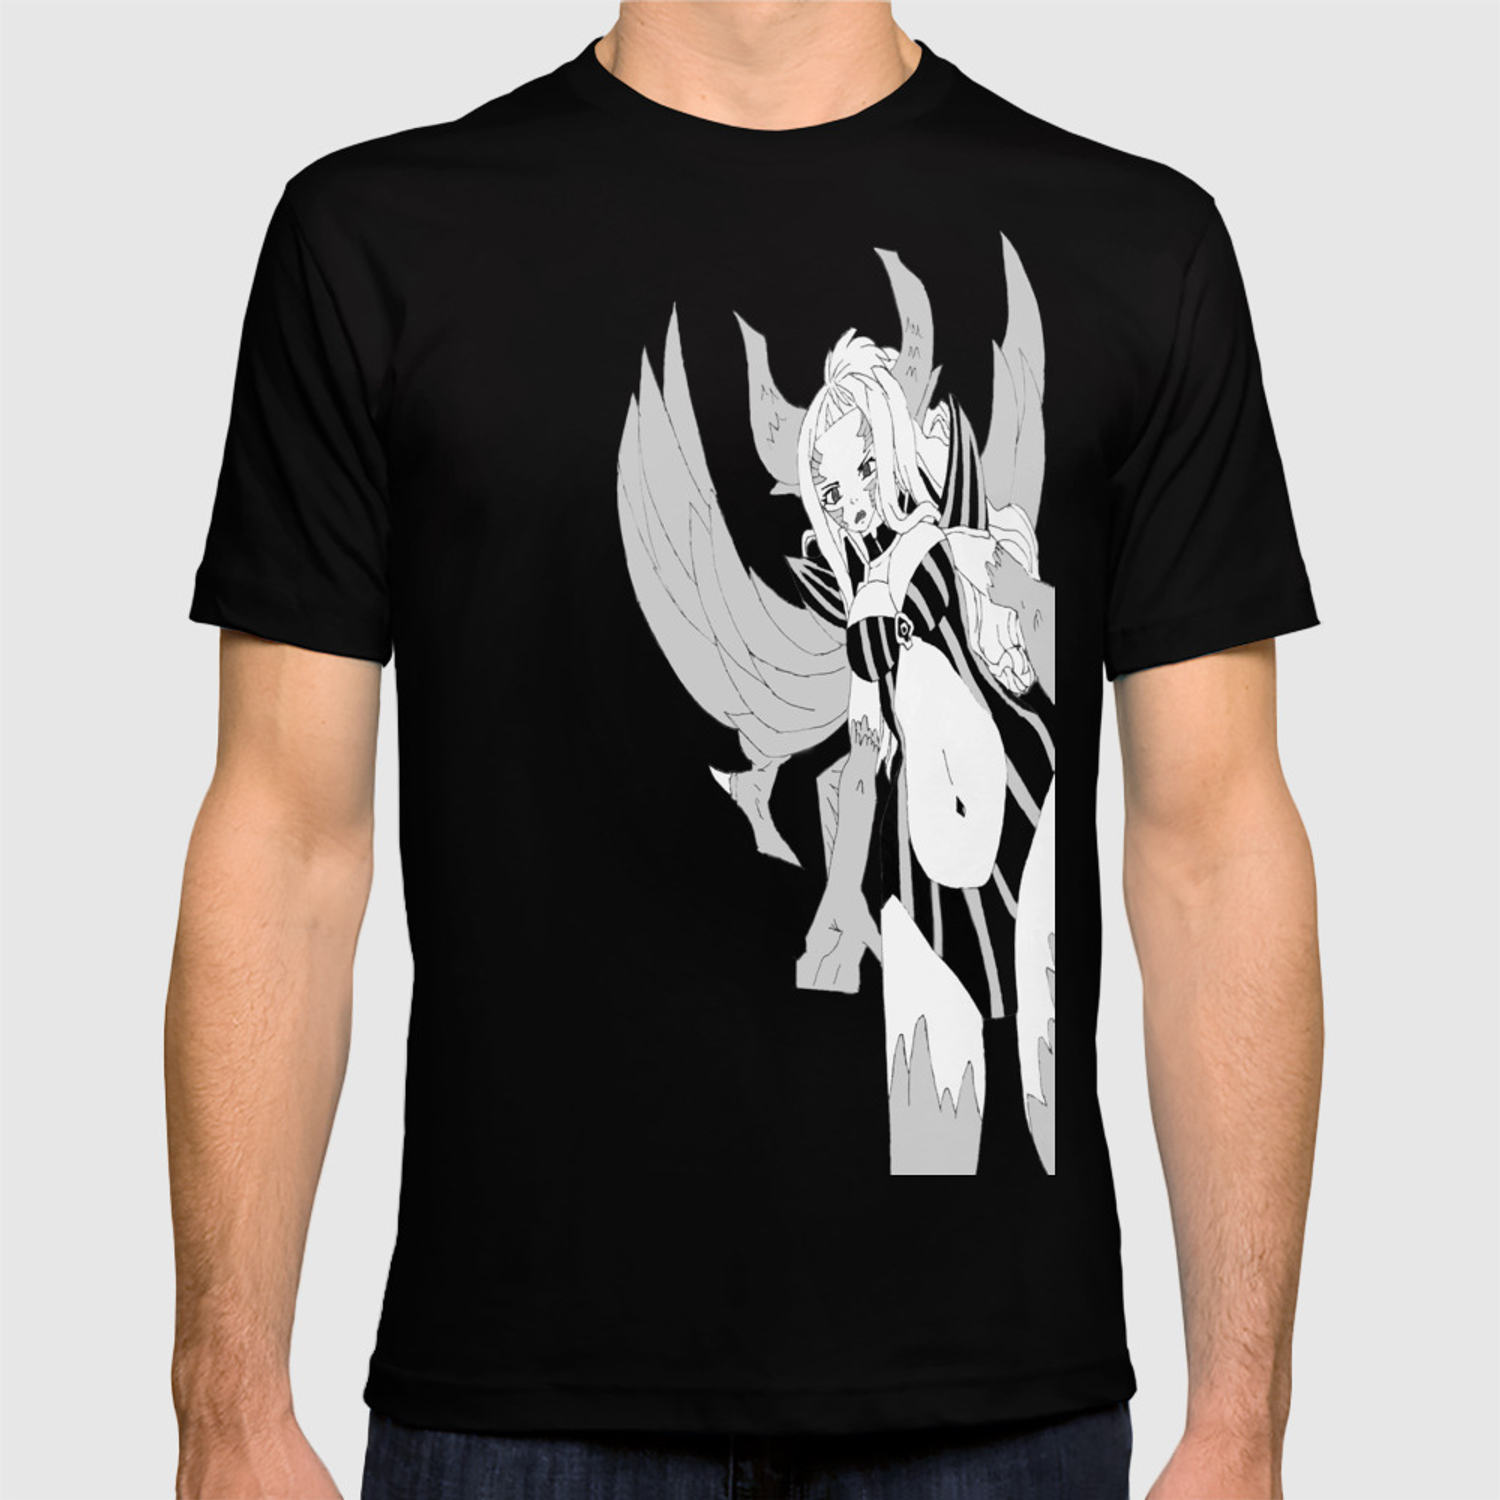 Mirajane Satan Soul Halphas T Shirt By Vanni94 Society6 Become a supporter today and help make this dream a reality! mirajane satan soul halphas t shirt by vanni94